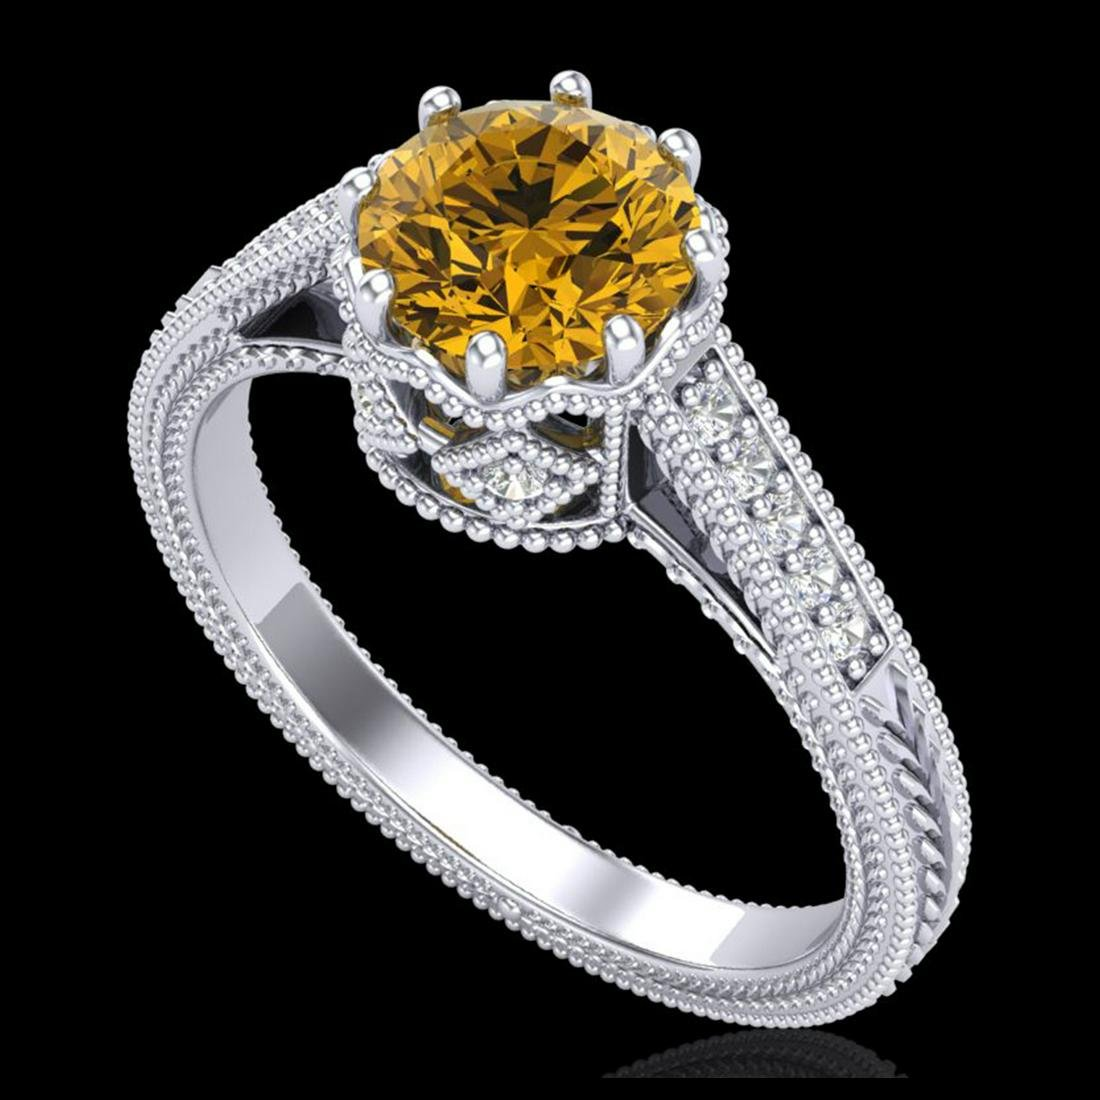 1.25 ctw Intense Fancy Yellow Diamond Art Deco Ring 18K